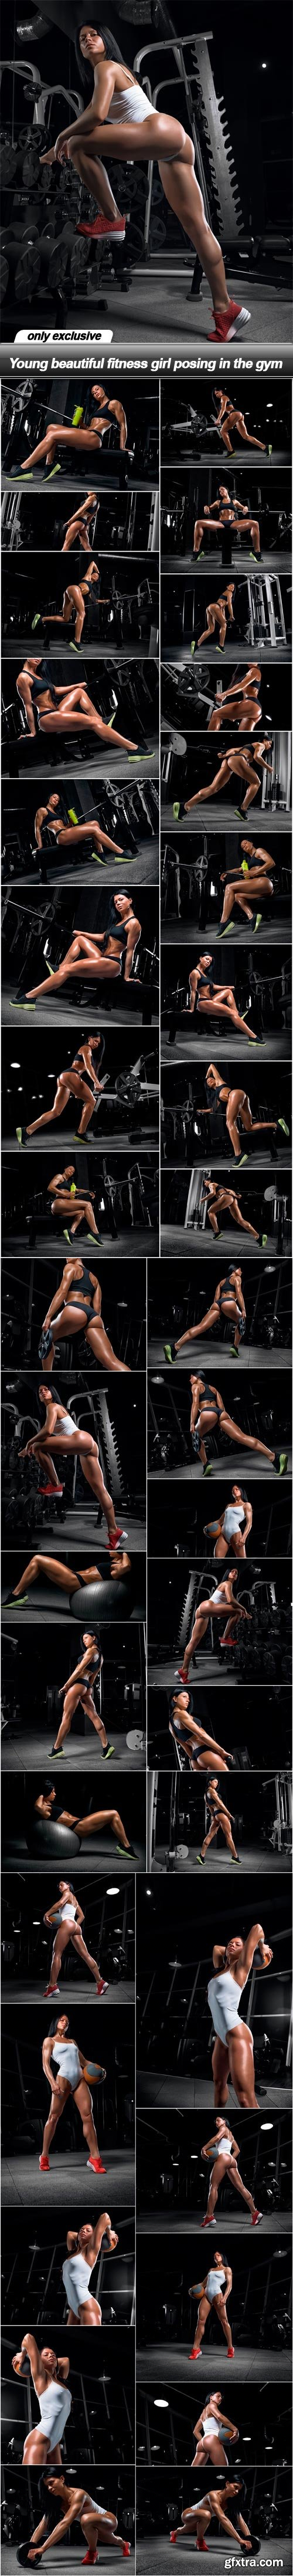 Young beautiful fitness girl posing in the gym - 38 UHQ JPEG